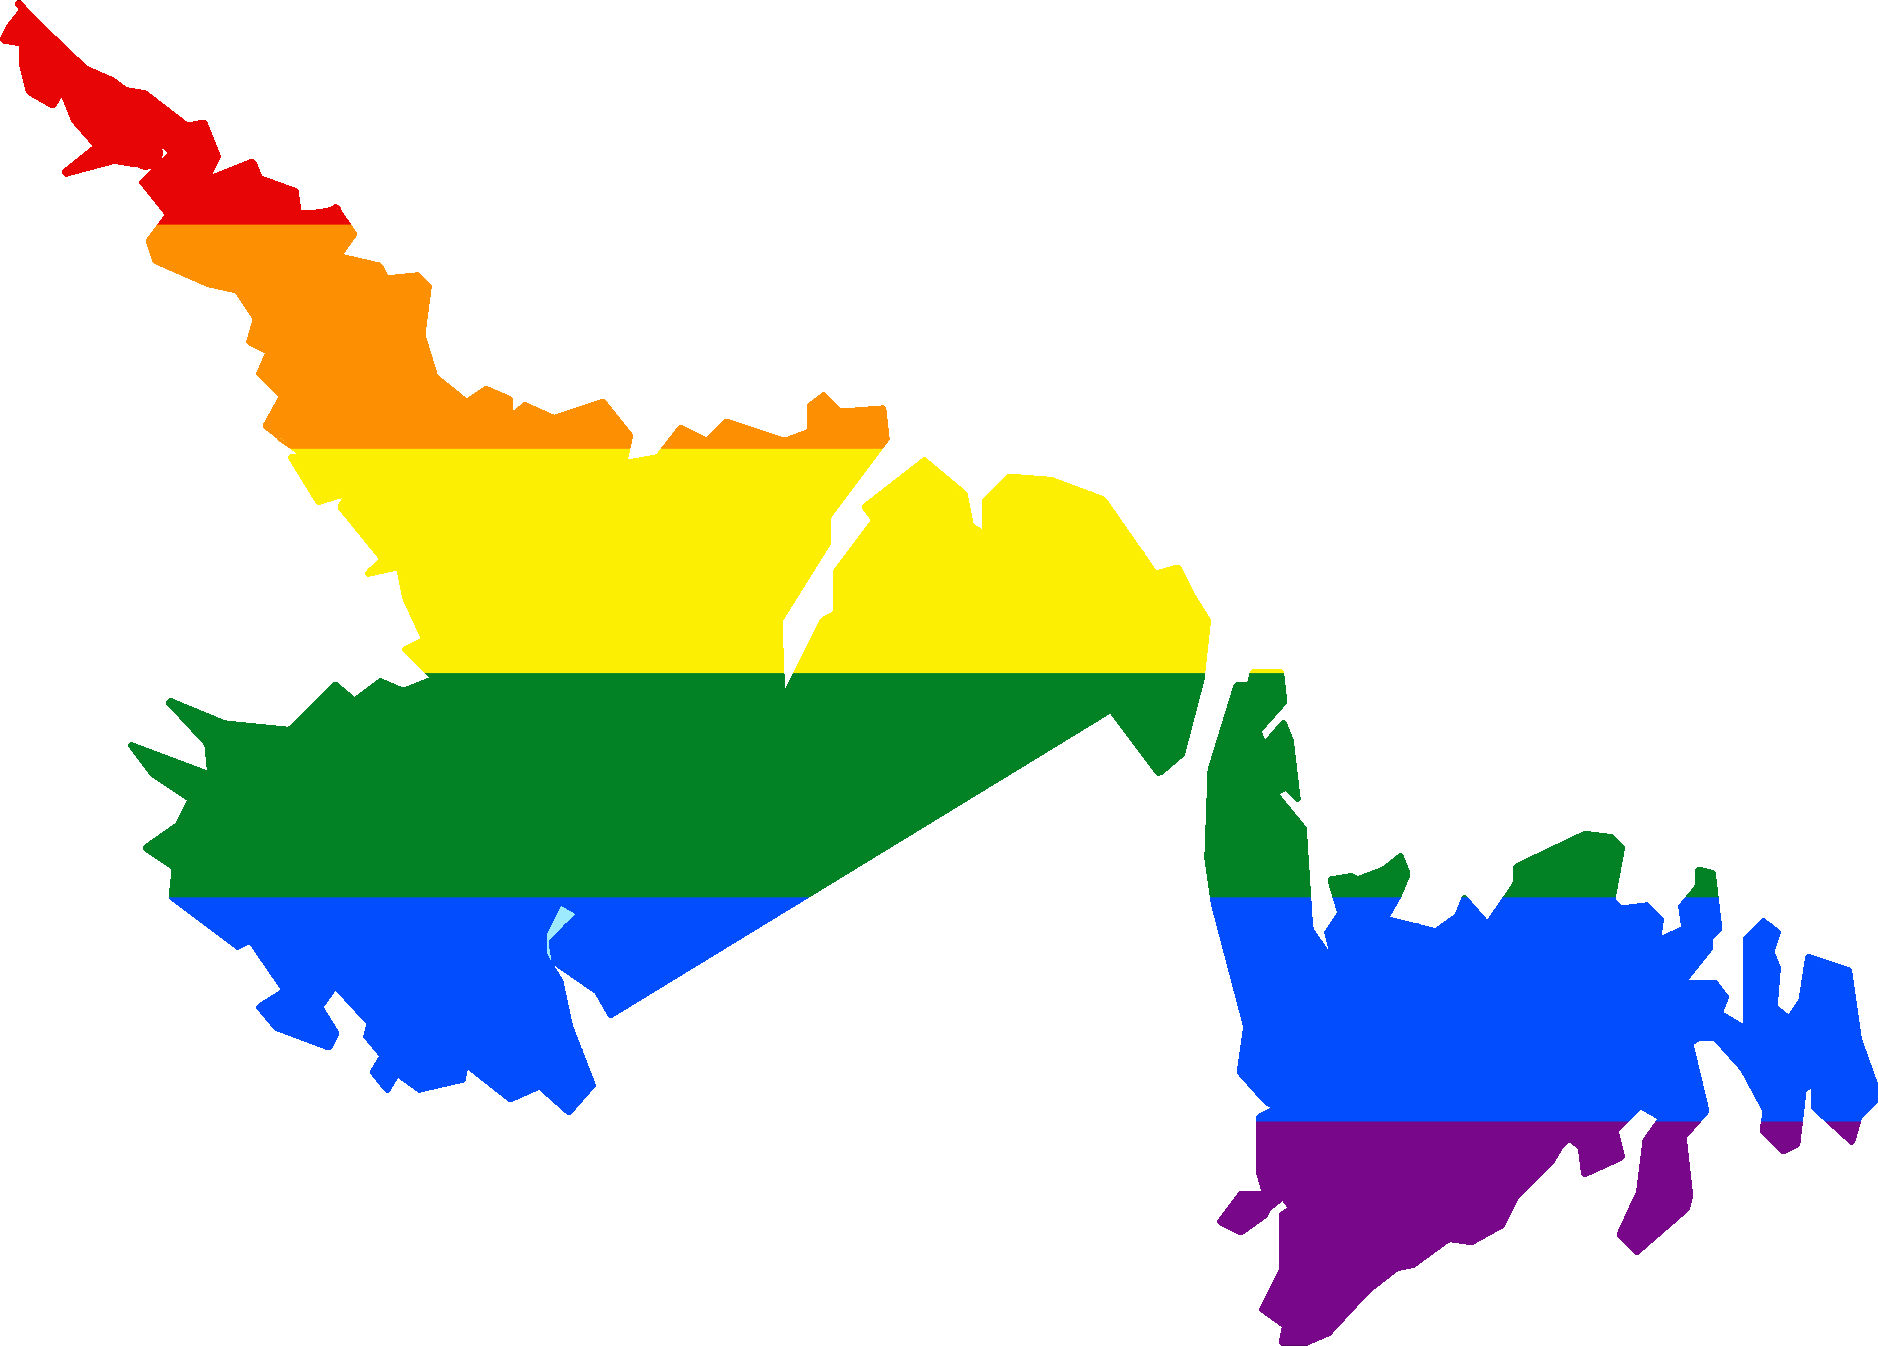 FileLGBT Flag Map Of Newfoundland And Labradorpng Wikimedia - Newfoundland and labrador map